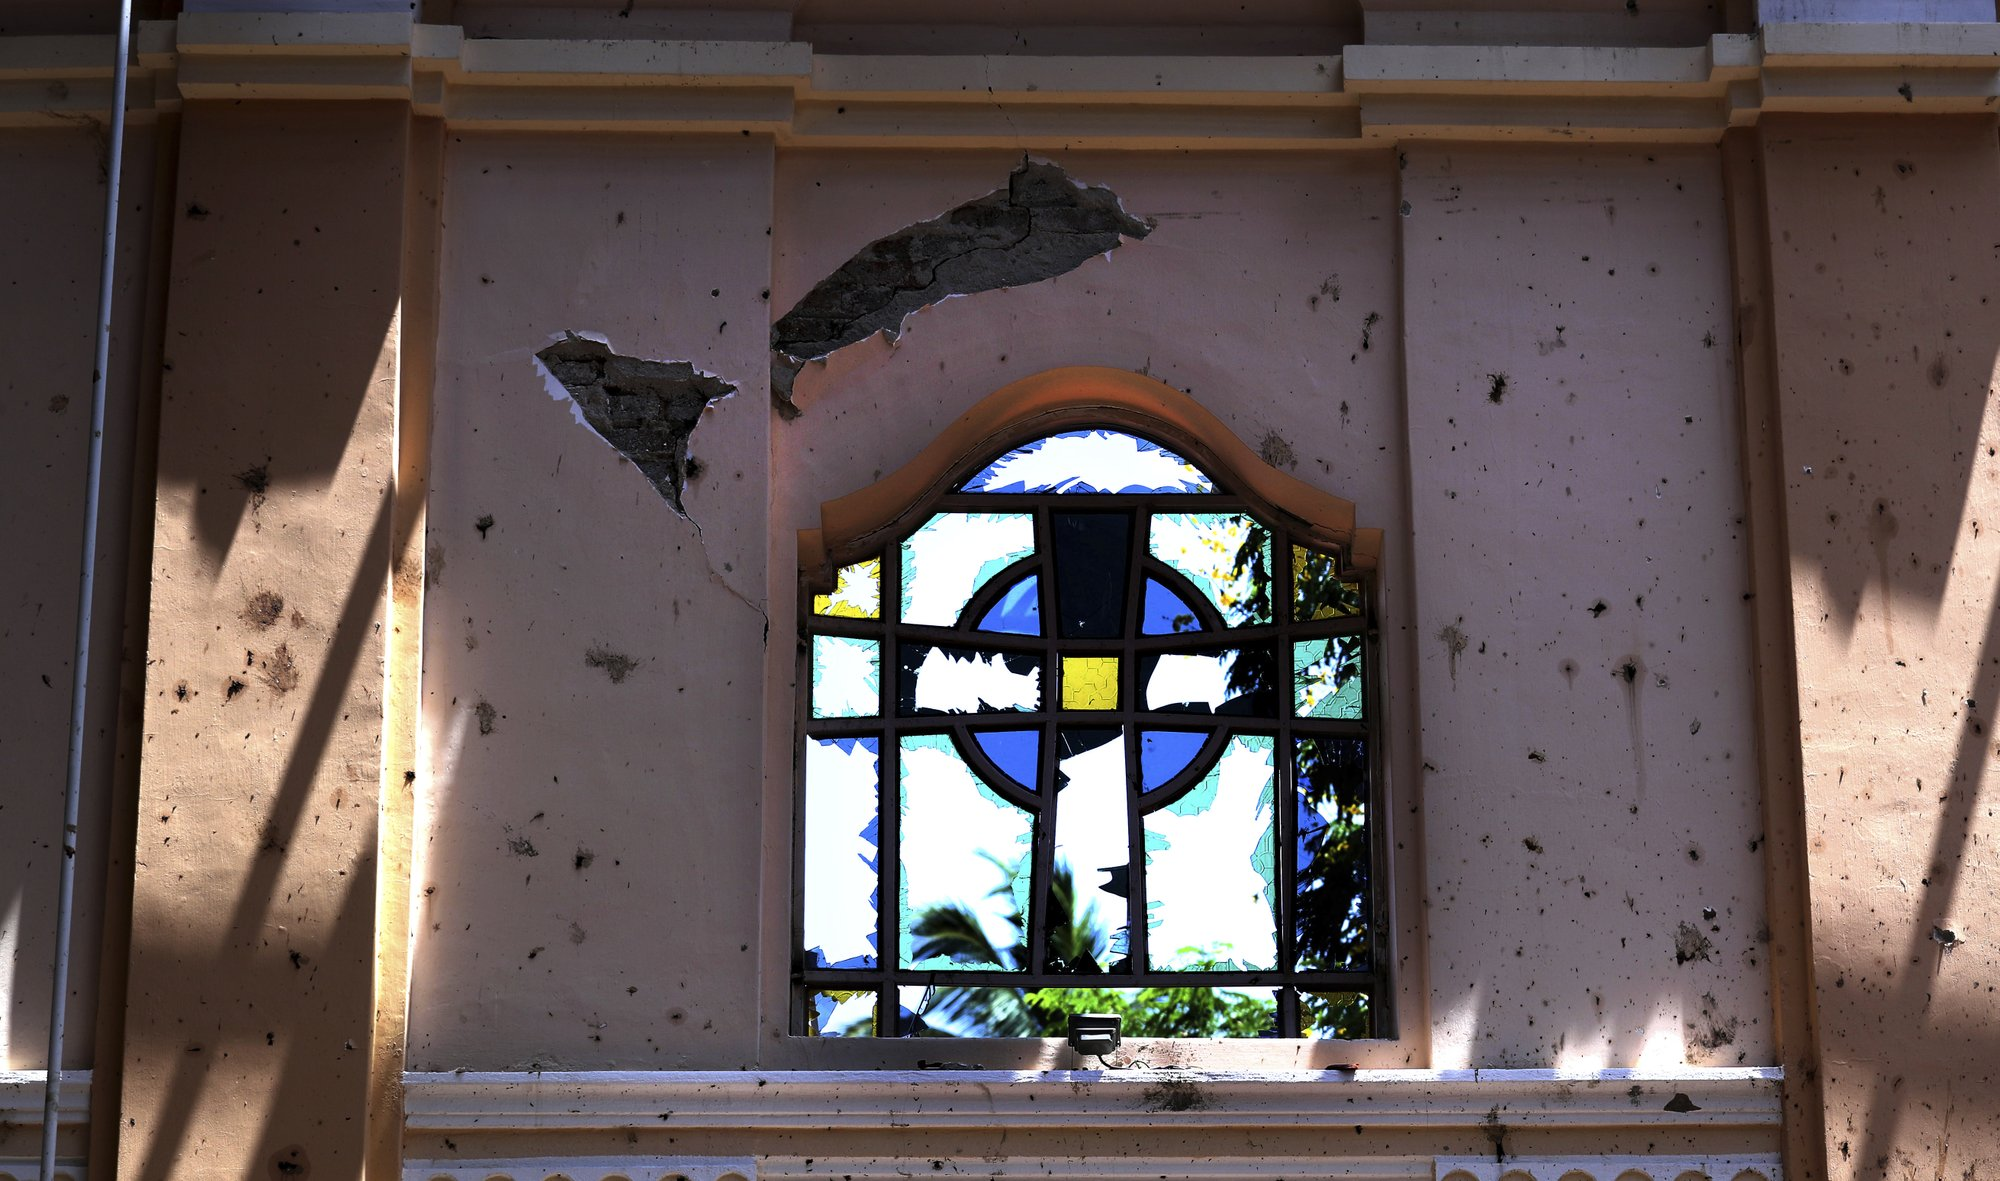 In this Thursday, April 25, 2019 photo, a stained-glass window stands broken at Sebastian's Church, where a suicide bomber blew himself up on Easter Sunday in Negombo, north of Colombo, Sri Lanka. Nearly a week later, the smell of death is everywhere, though the bodies are long gone. Yet somehow, there's a beauty to St. Sebastian's, a neighborhood church in a Catholic enclave north of Sri Lanka's capital. You can see the beauty in the broken stained-glass windows. It's there as the sun shines through the roof's gaping holes. It's there in the little statues that refused to fall over, and despite the swarms of police and soldiers who seem to be everywhere now in the streets of the seaside town of Negombo. (AP Photo/Manish Swarup)